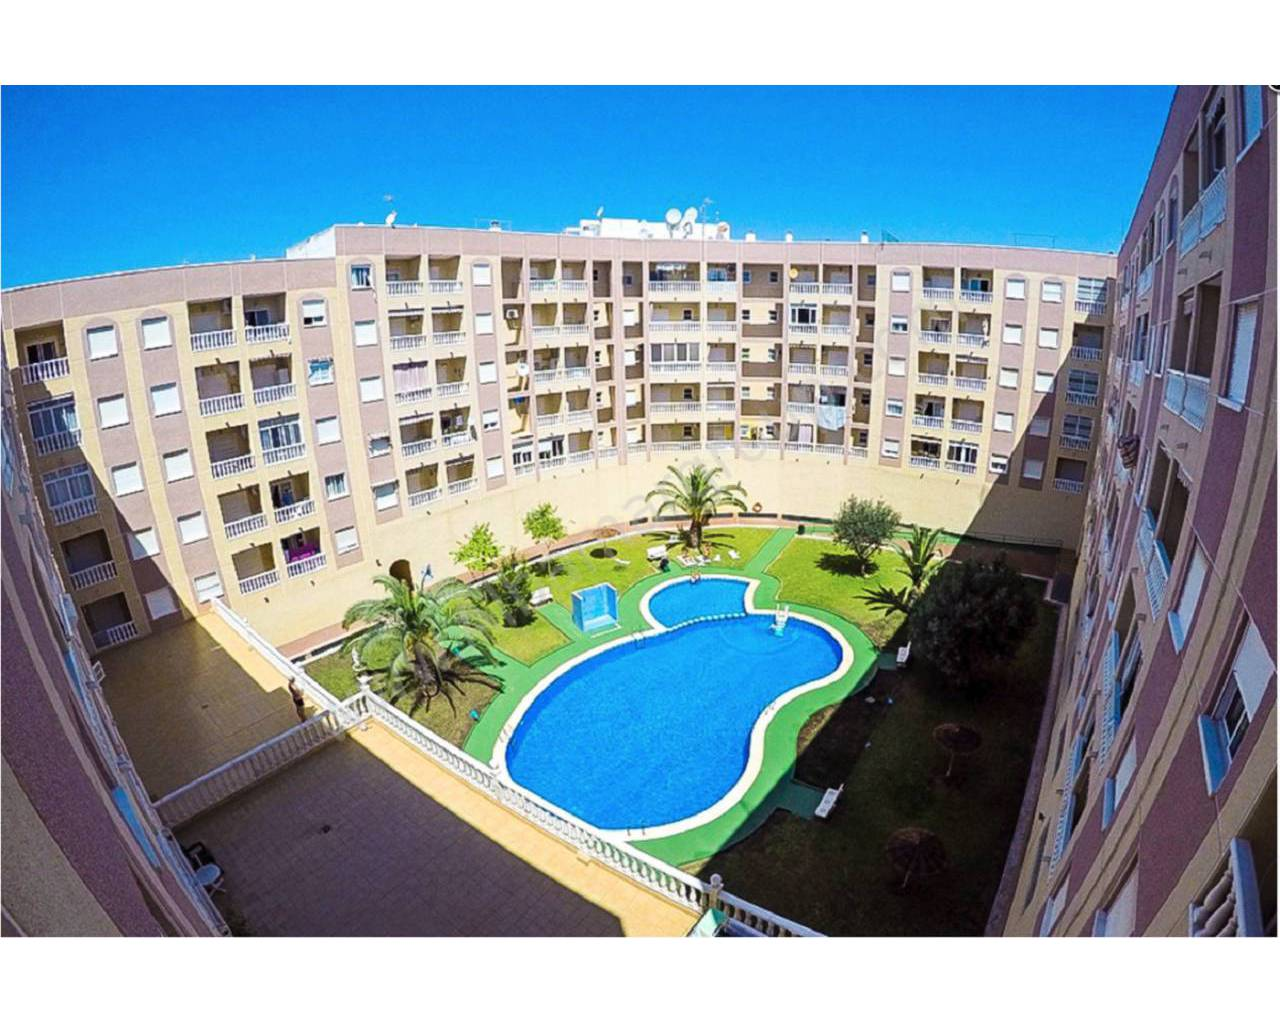 Apartment - Short term rental - Torrevieja - Torrevieja